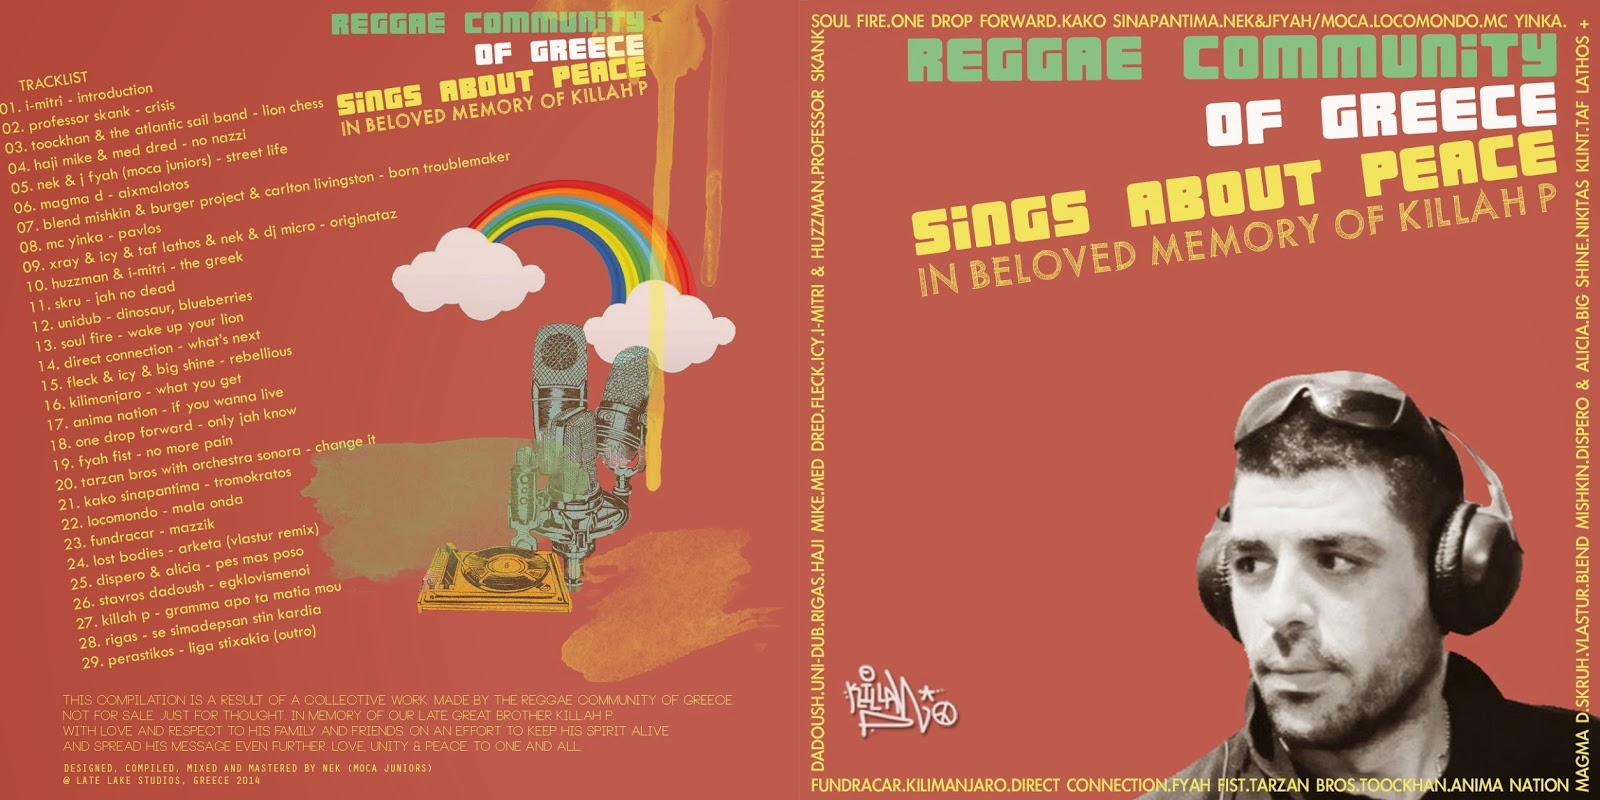 REGGAE COMMUNITY OF GREECE SINGS ABOUT PEACE KILLAH P CD ARTWORK2